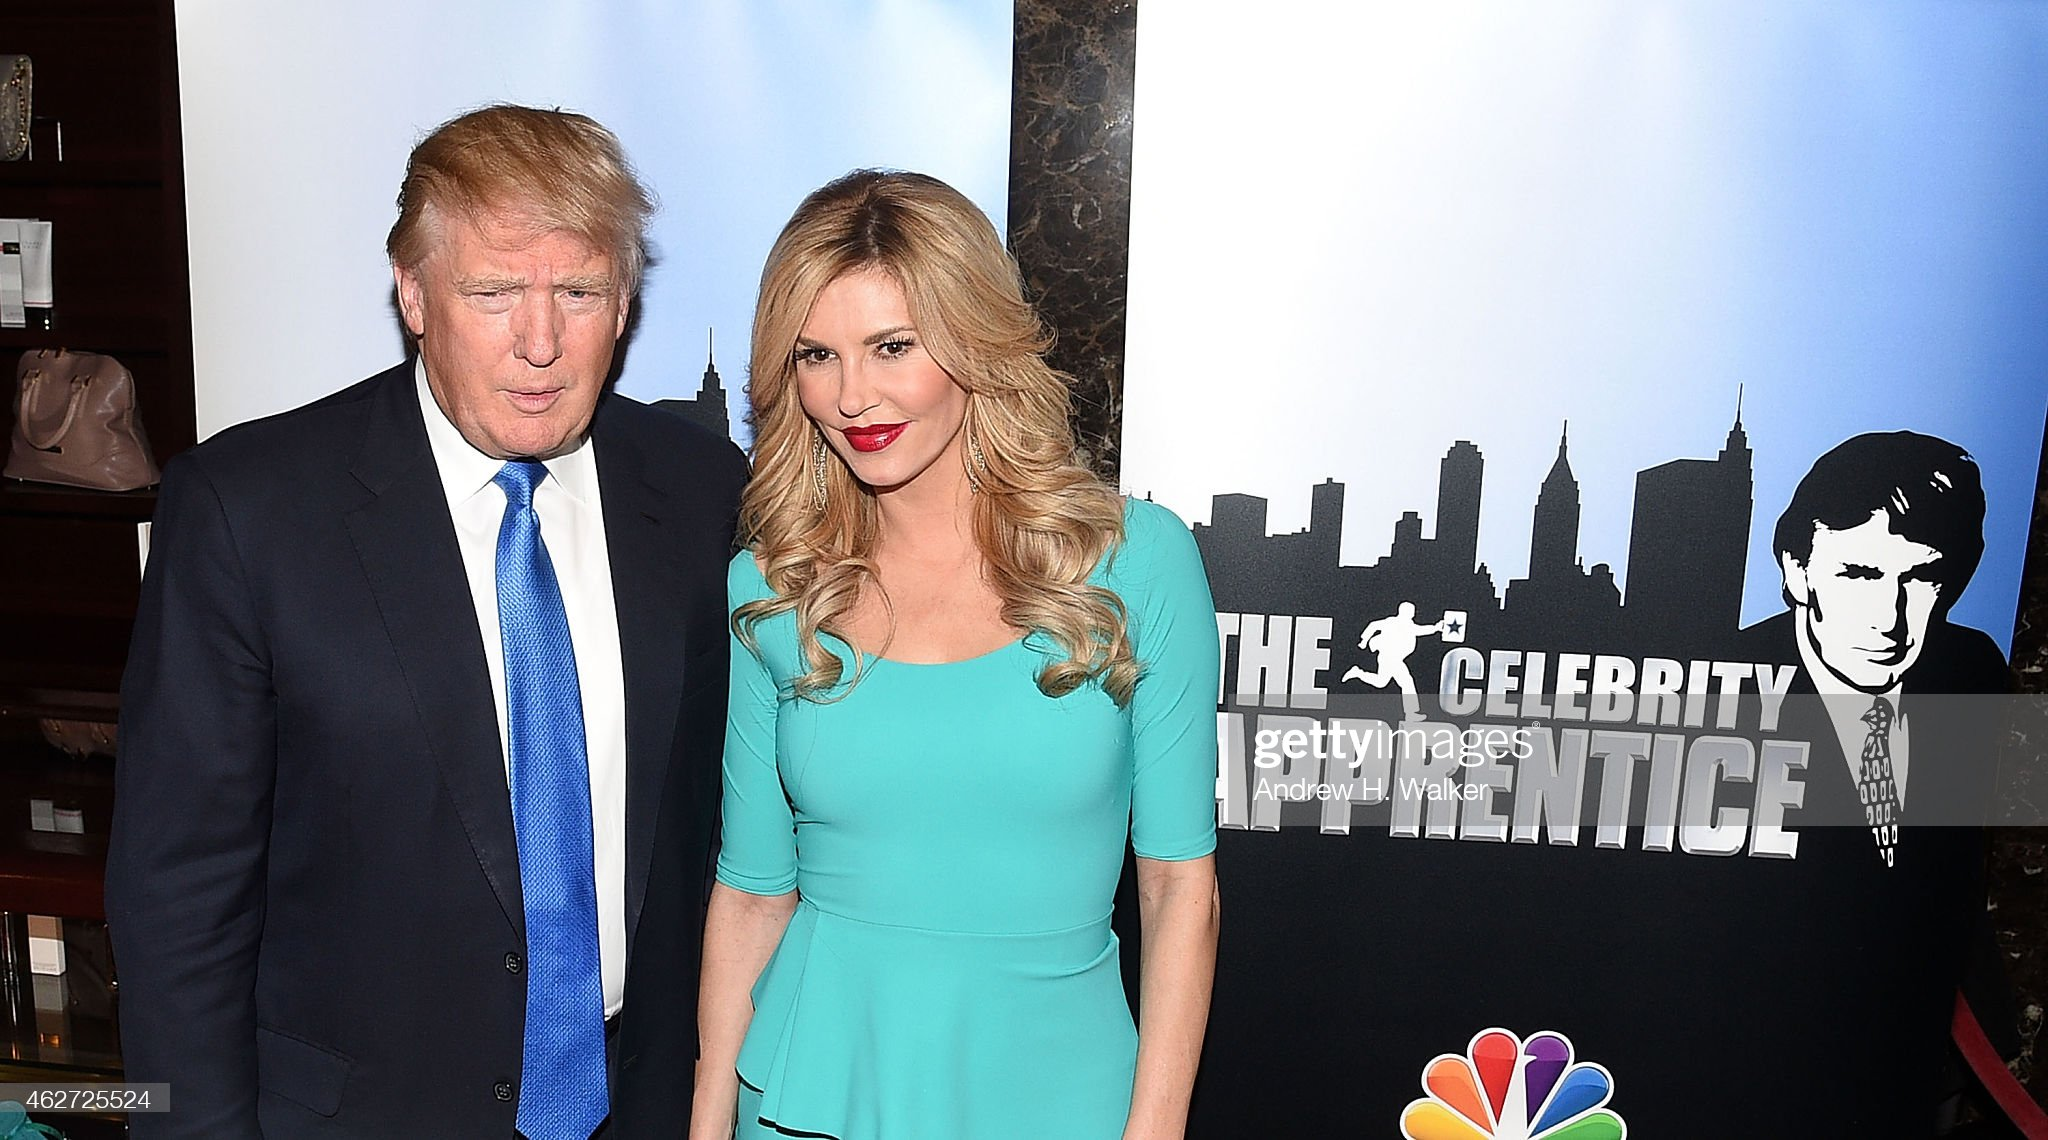 What will RHOBH's Brandi Glanville tweet next?